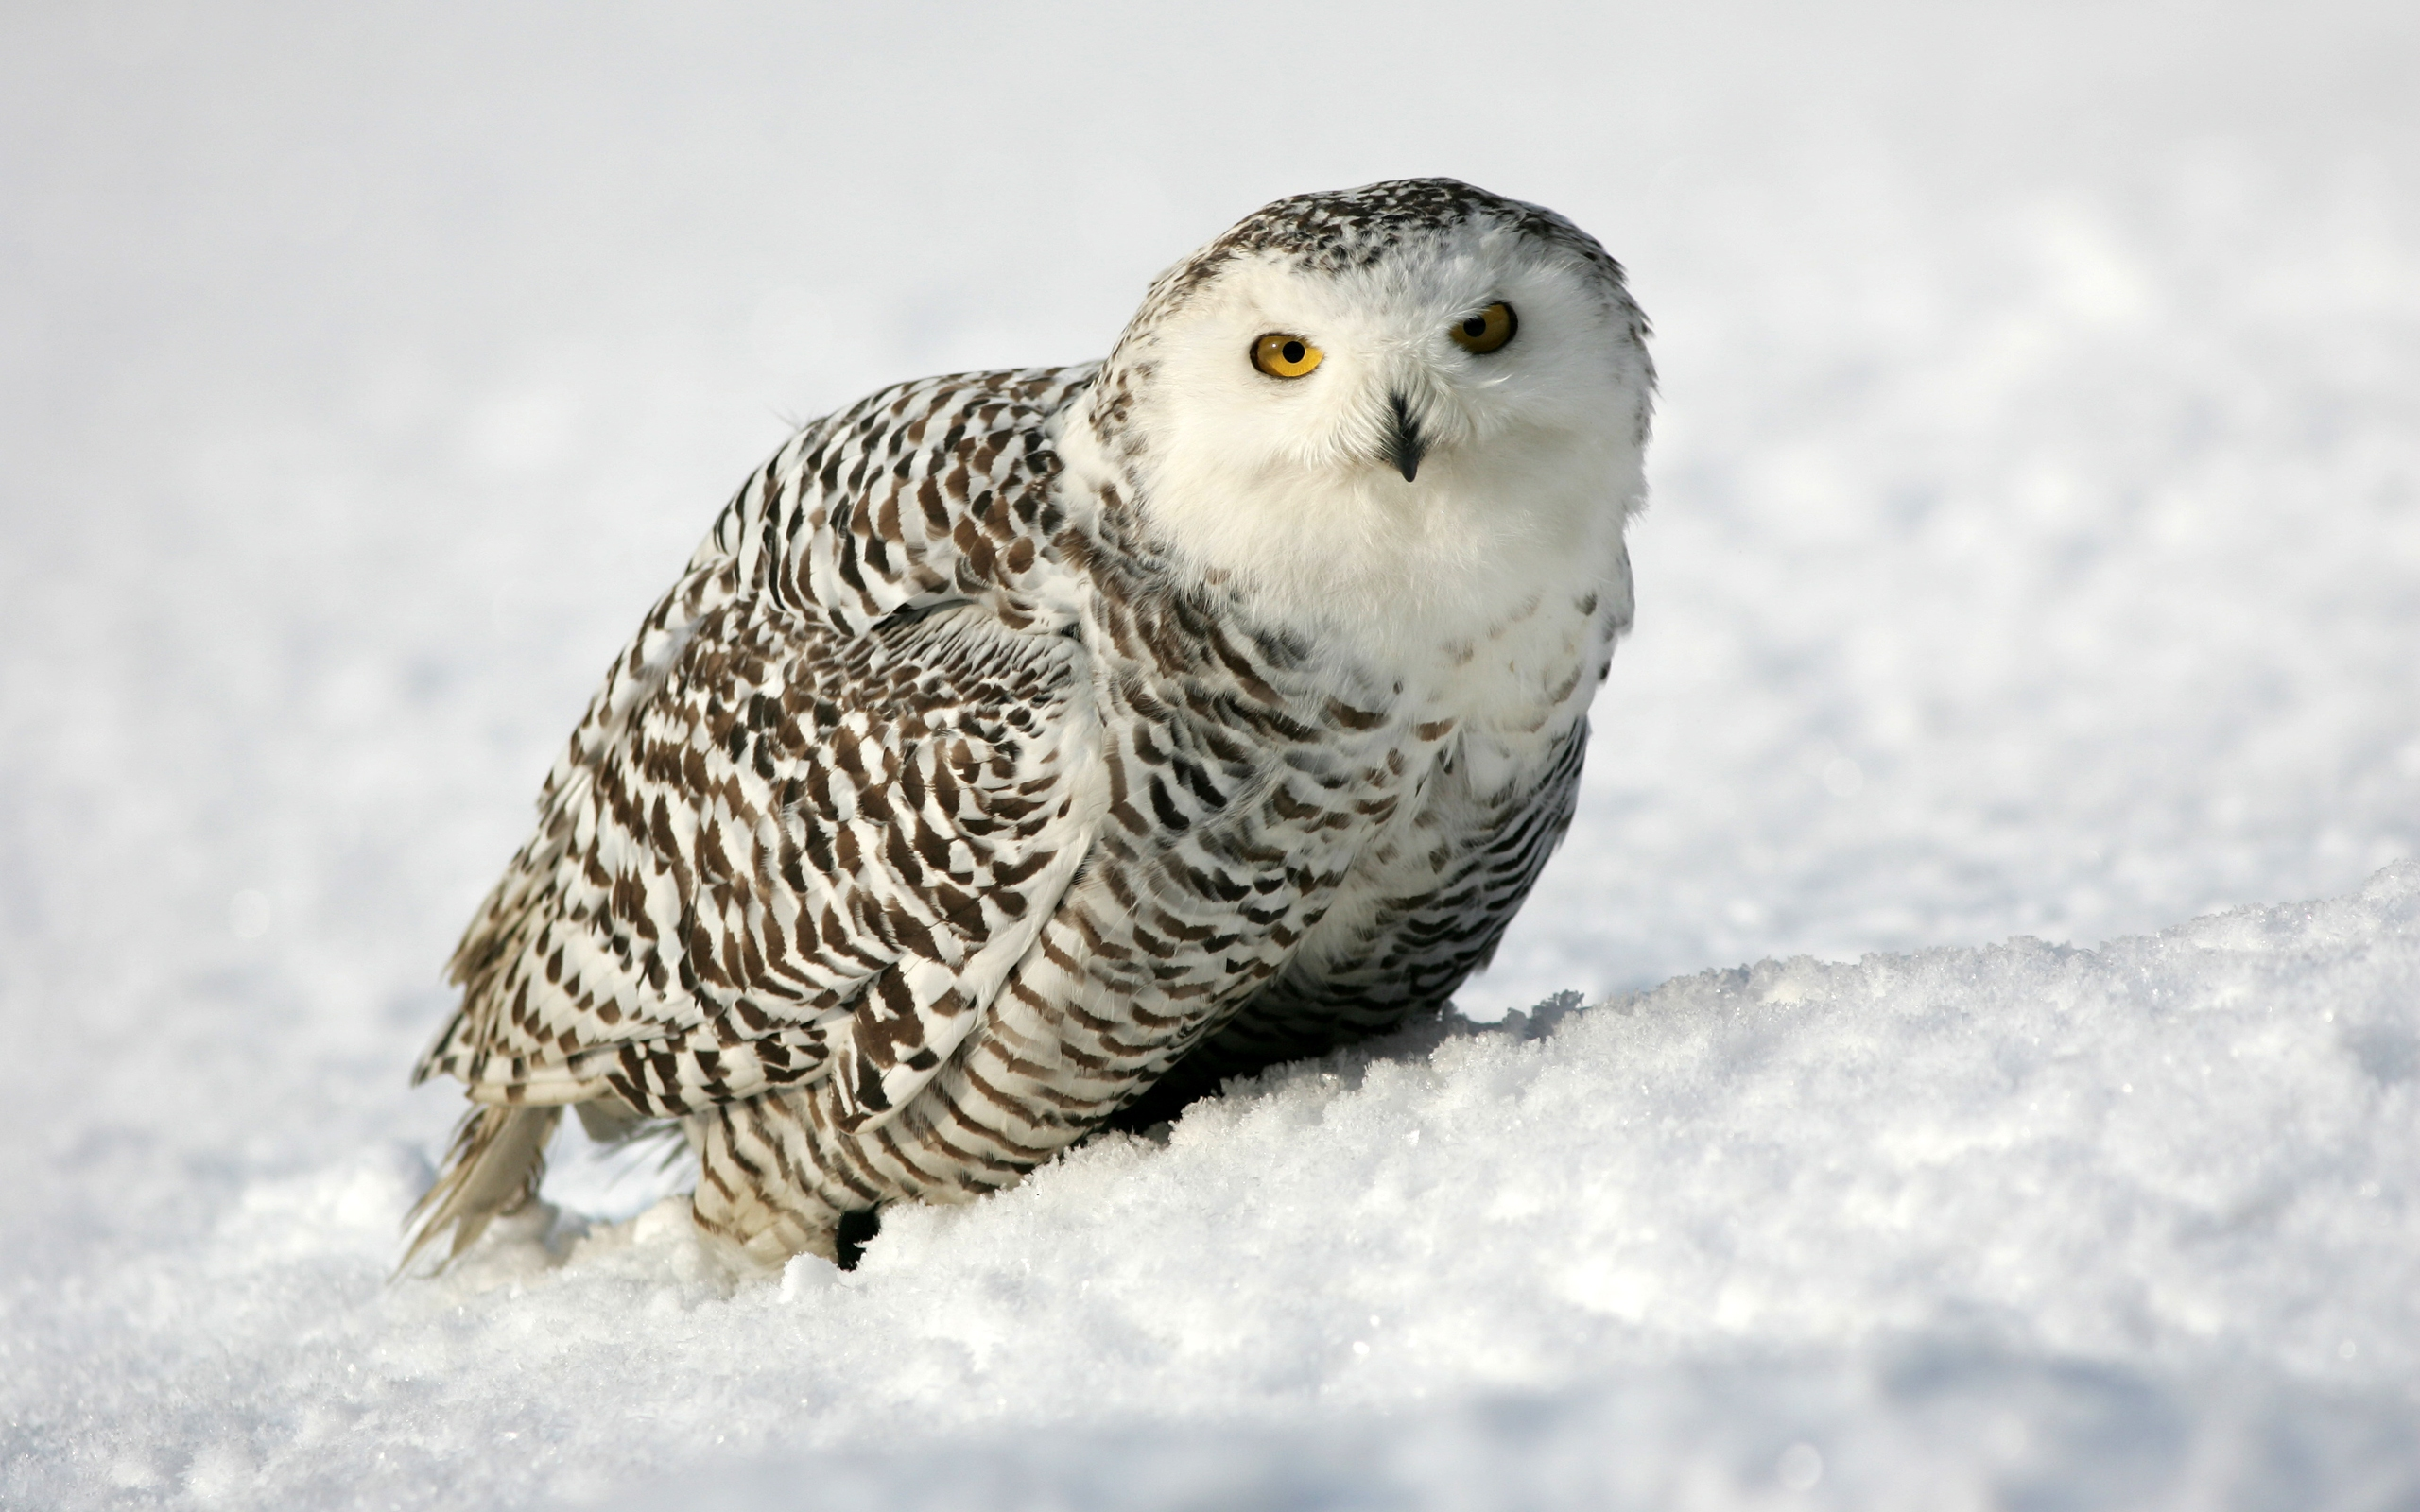 cute snowy owl wallpaper wwwpixsharkcom images